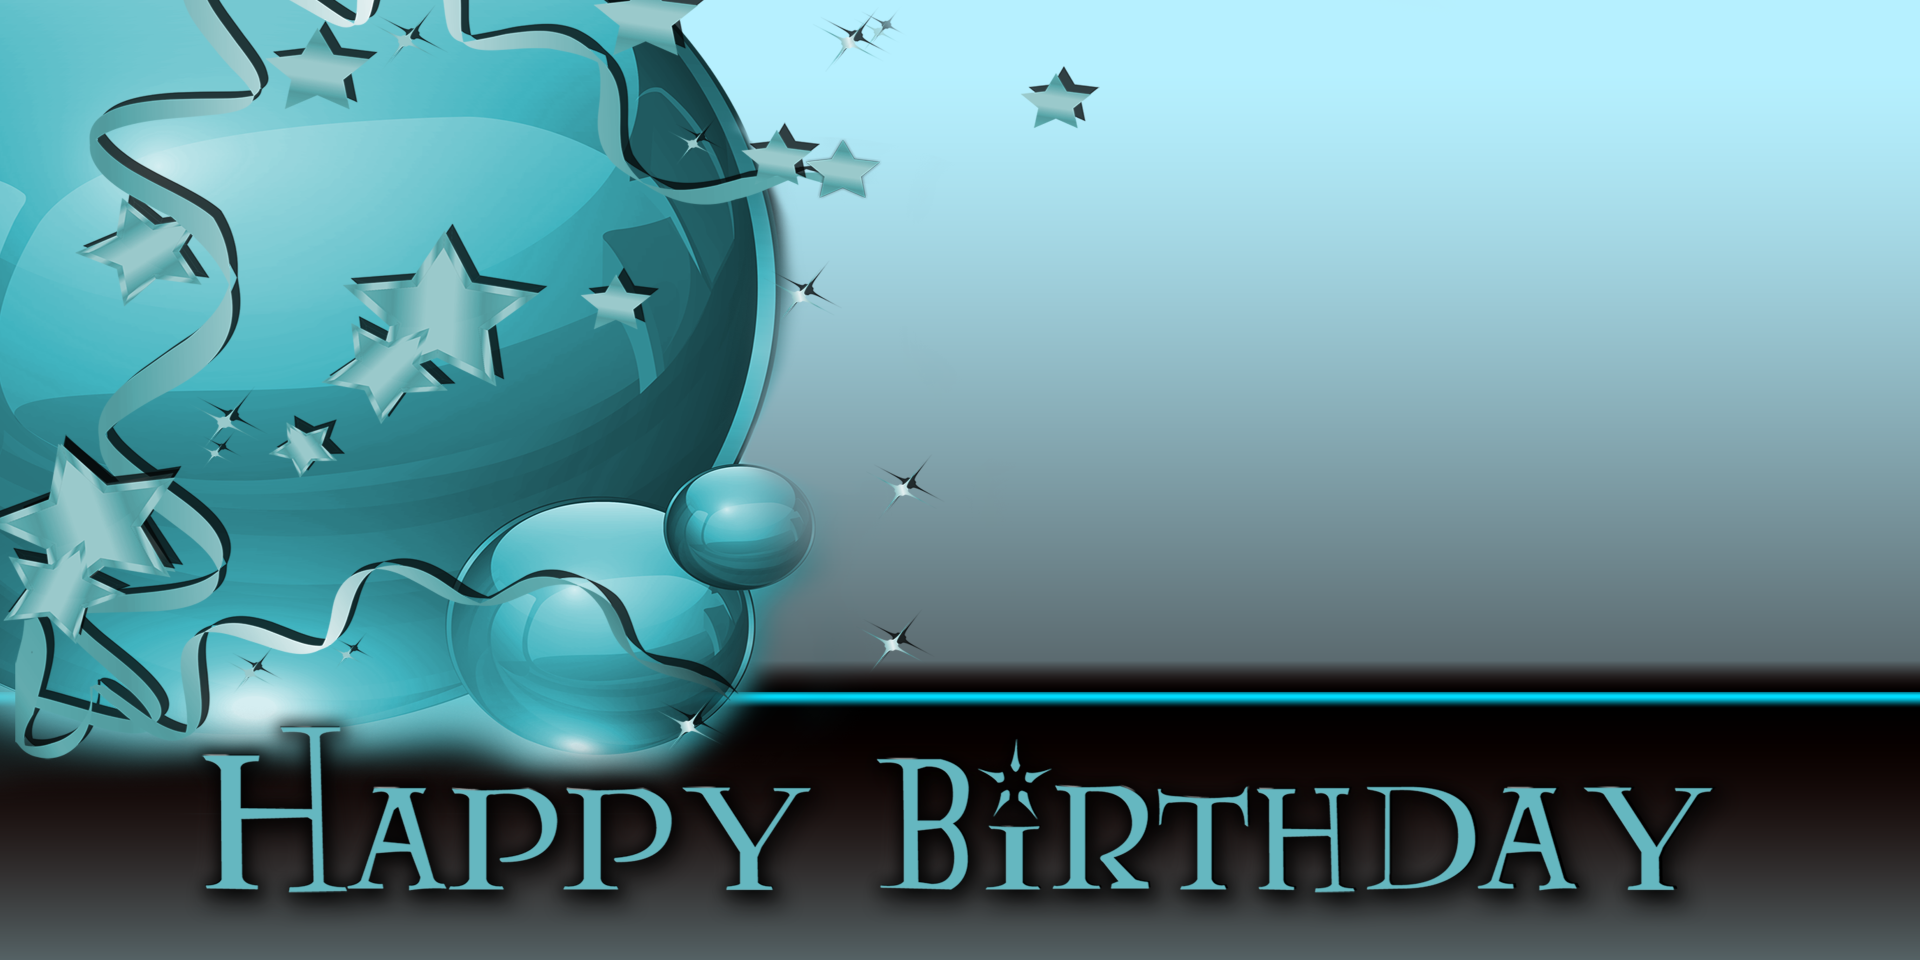 Teal Happy Birthday Banner Teal Sign Teal Customize Banner Teal Party Decor Teal Banner Teal Birthday Banner Teal Birthday Banner